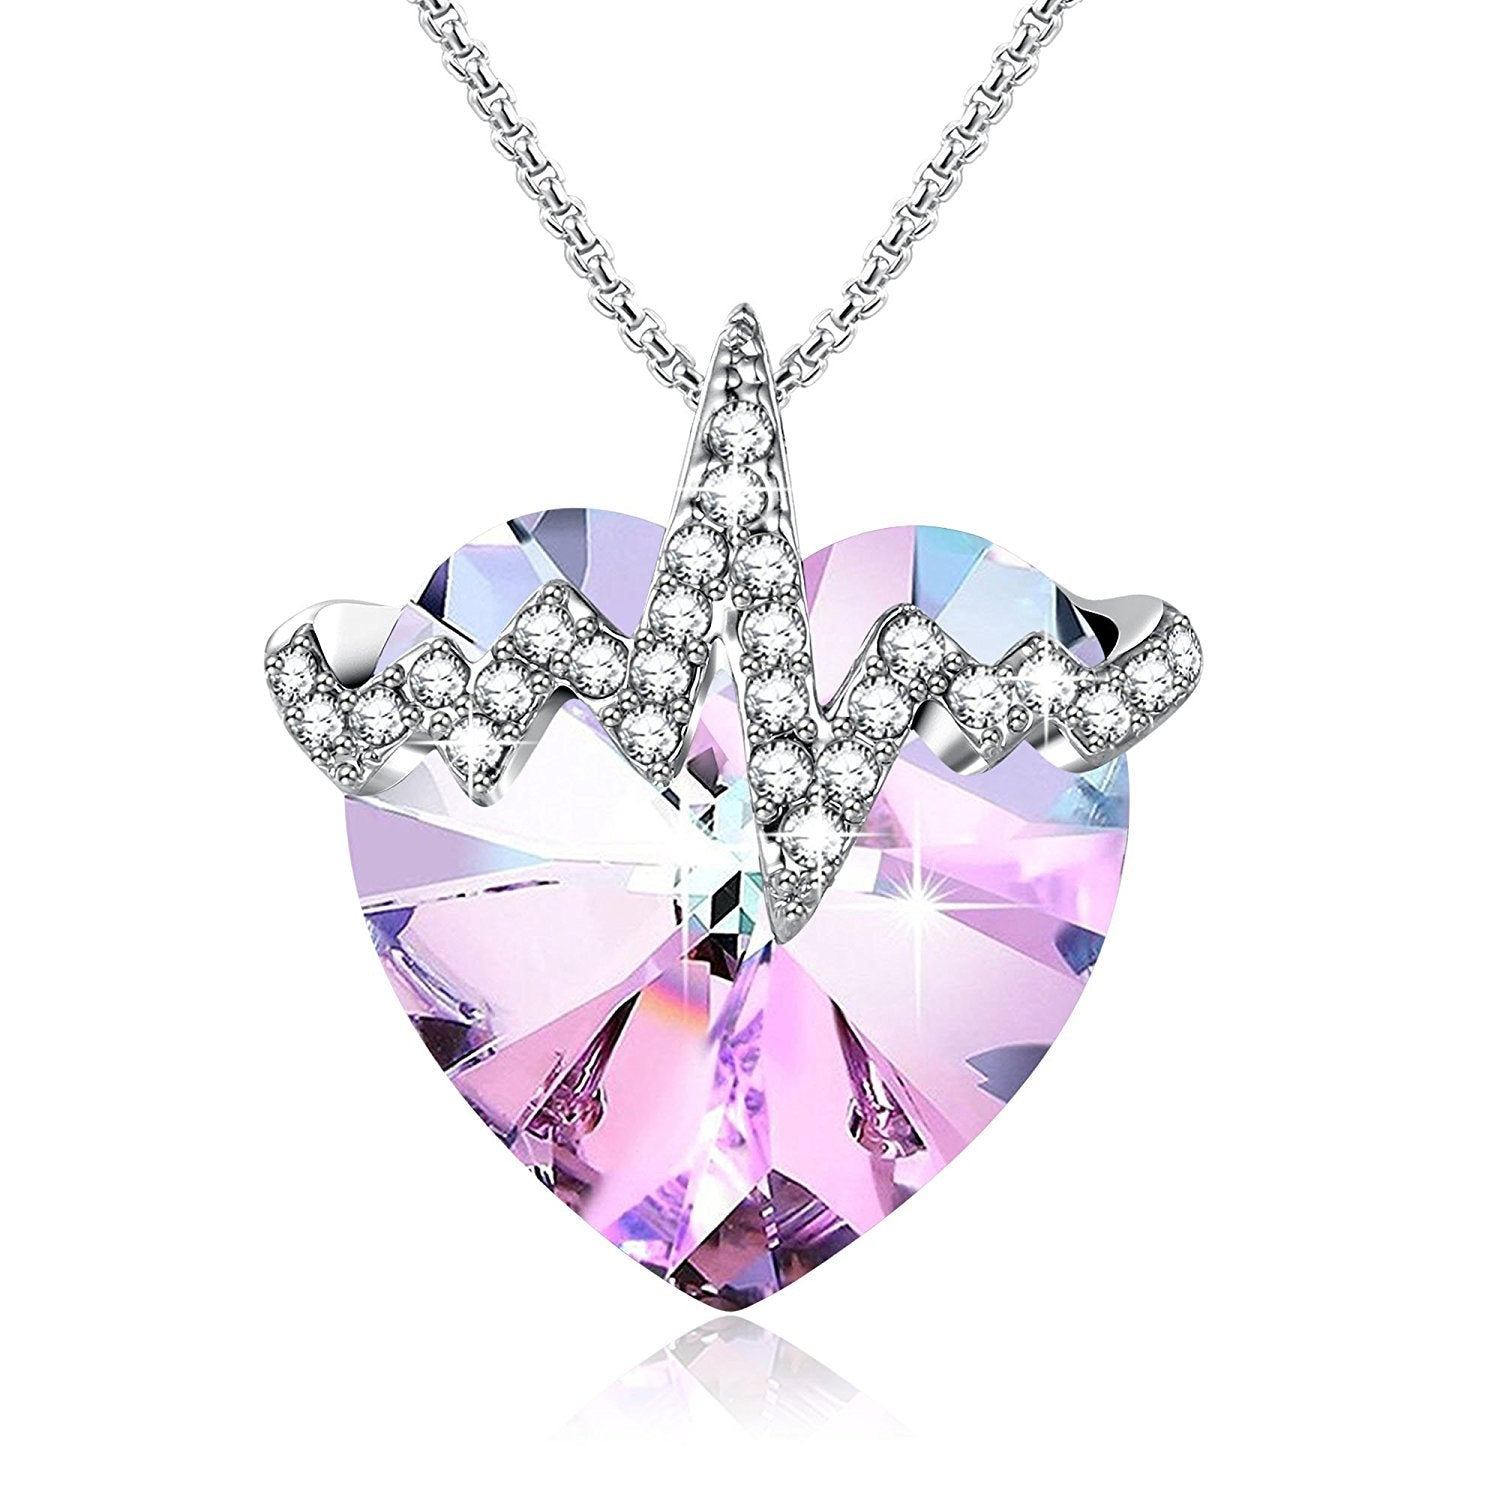 Cubic Pendant Necklace for Women Allergy Free Jewelry Gifts for Mother Daughter Wife Girlfriend Crystal Necklace 925 Sterling Silver Gift Packaged Colorful Crystal Aurore Boreale Necklace